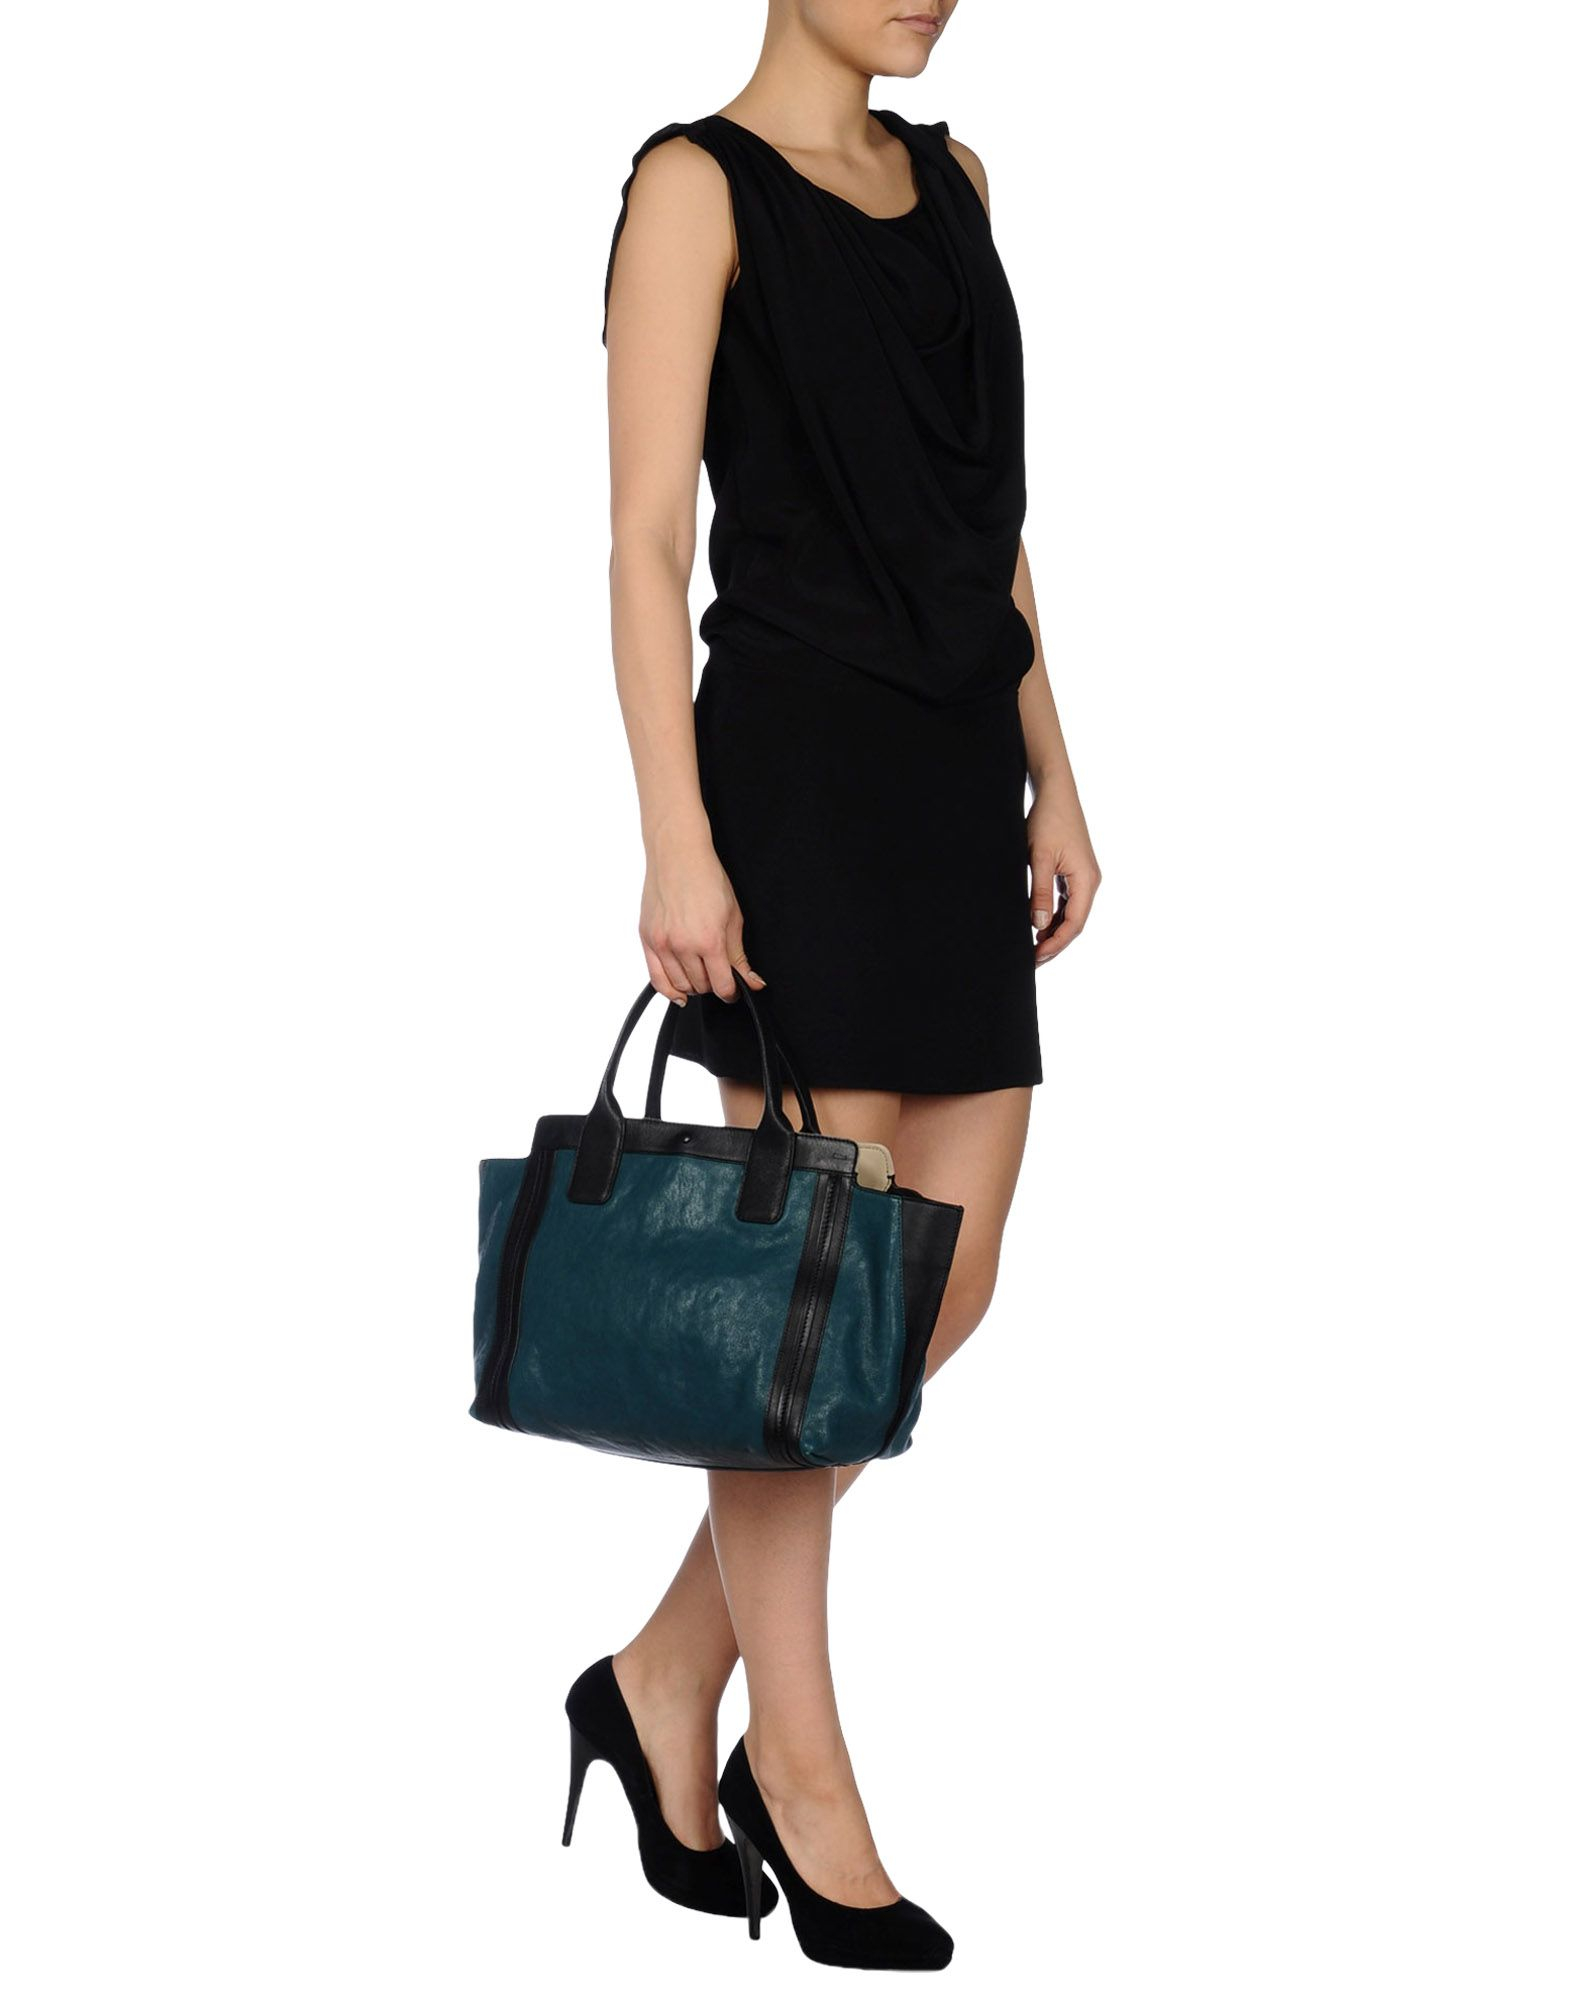 fake chloe bag - Chlo�� Large Leather Bag in Green (Deep jade) | Lyst